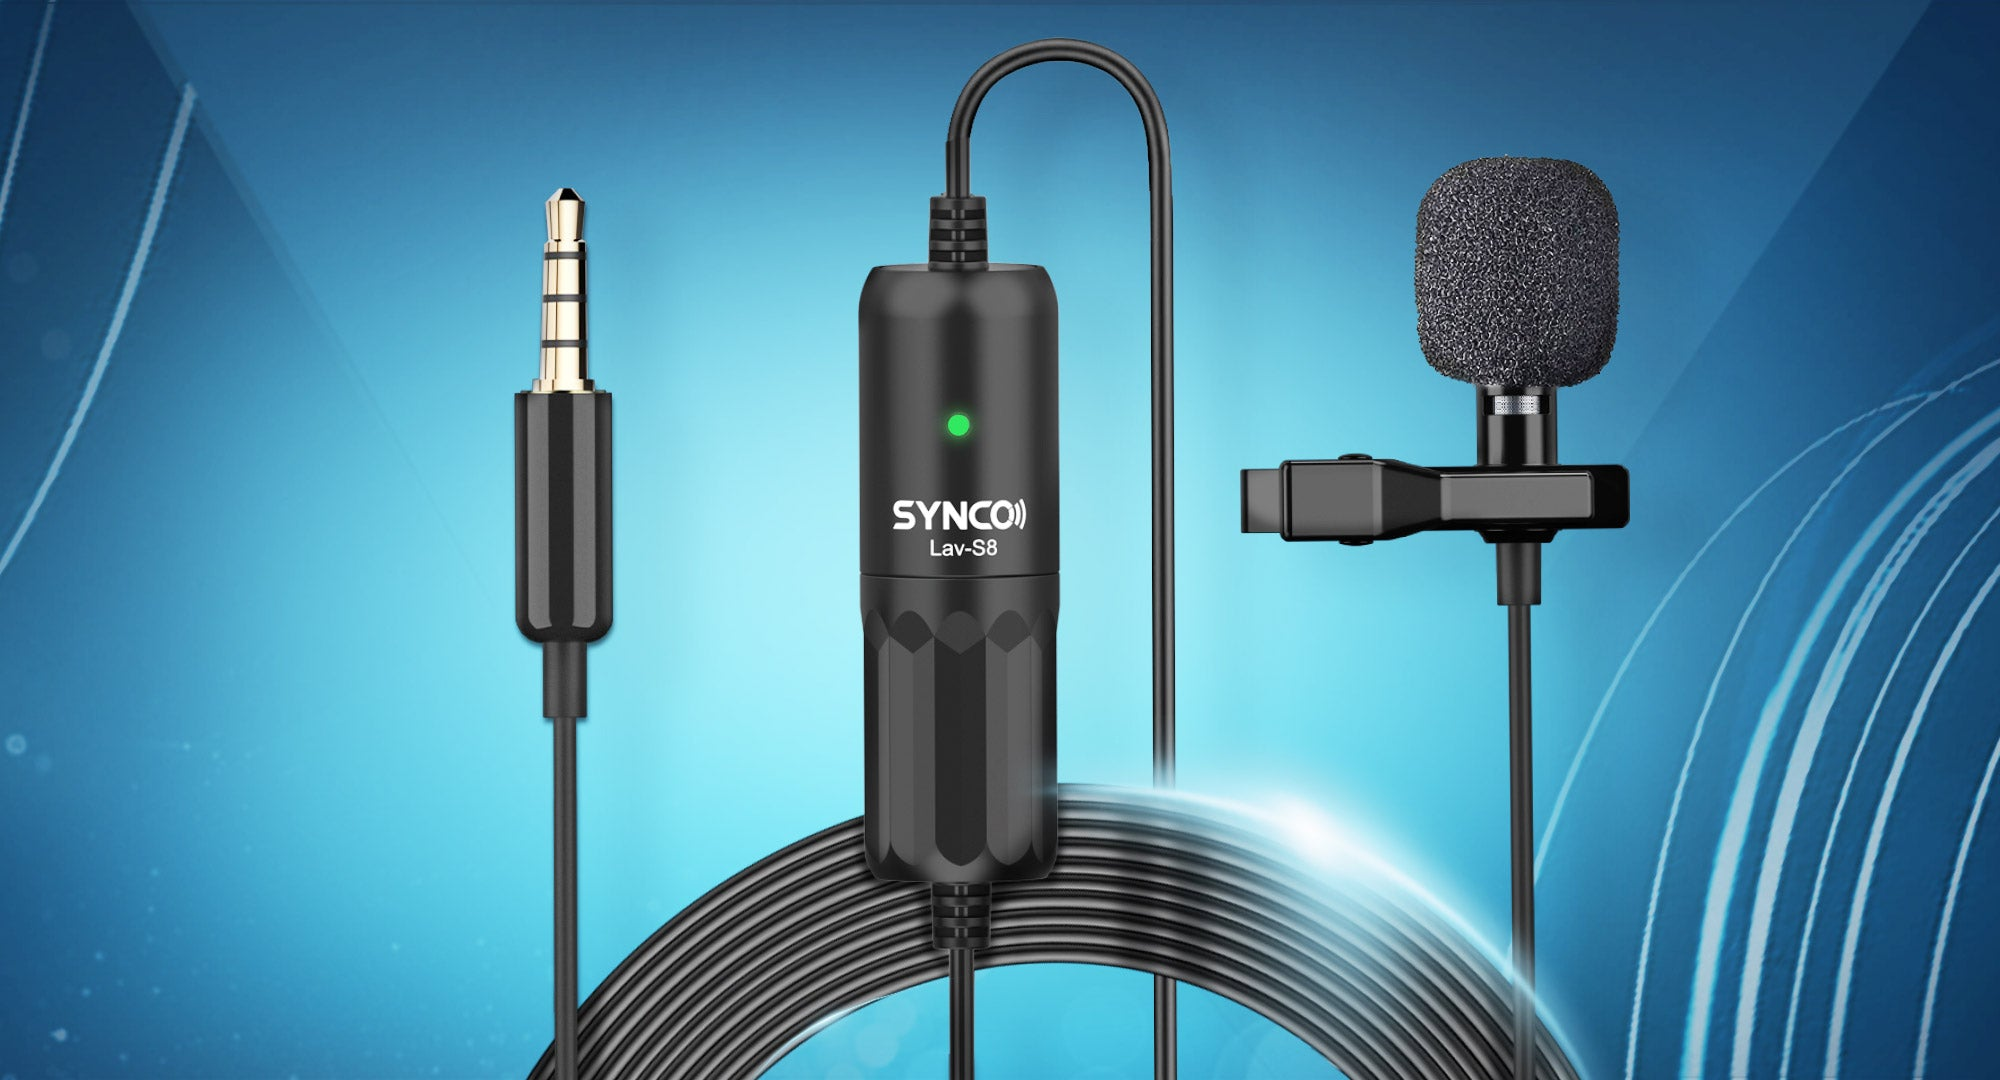 SYNCO Lav-S8 Extra-long Audio Cable